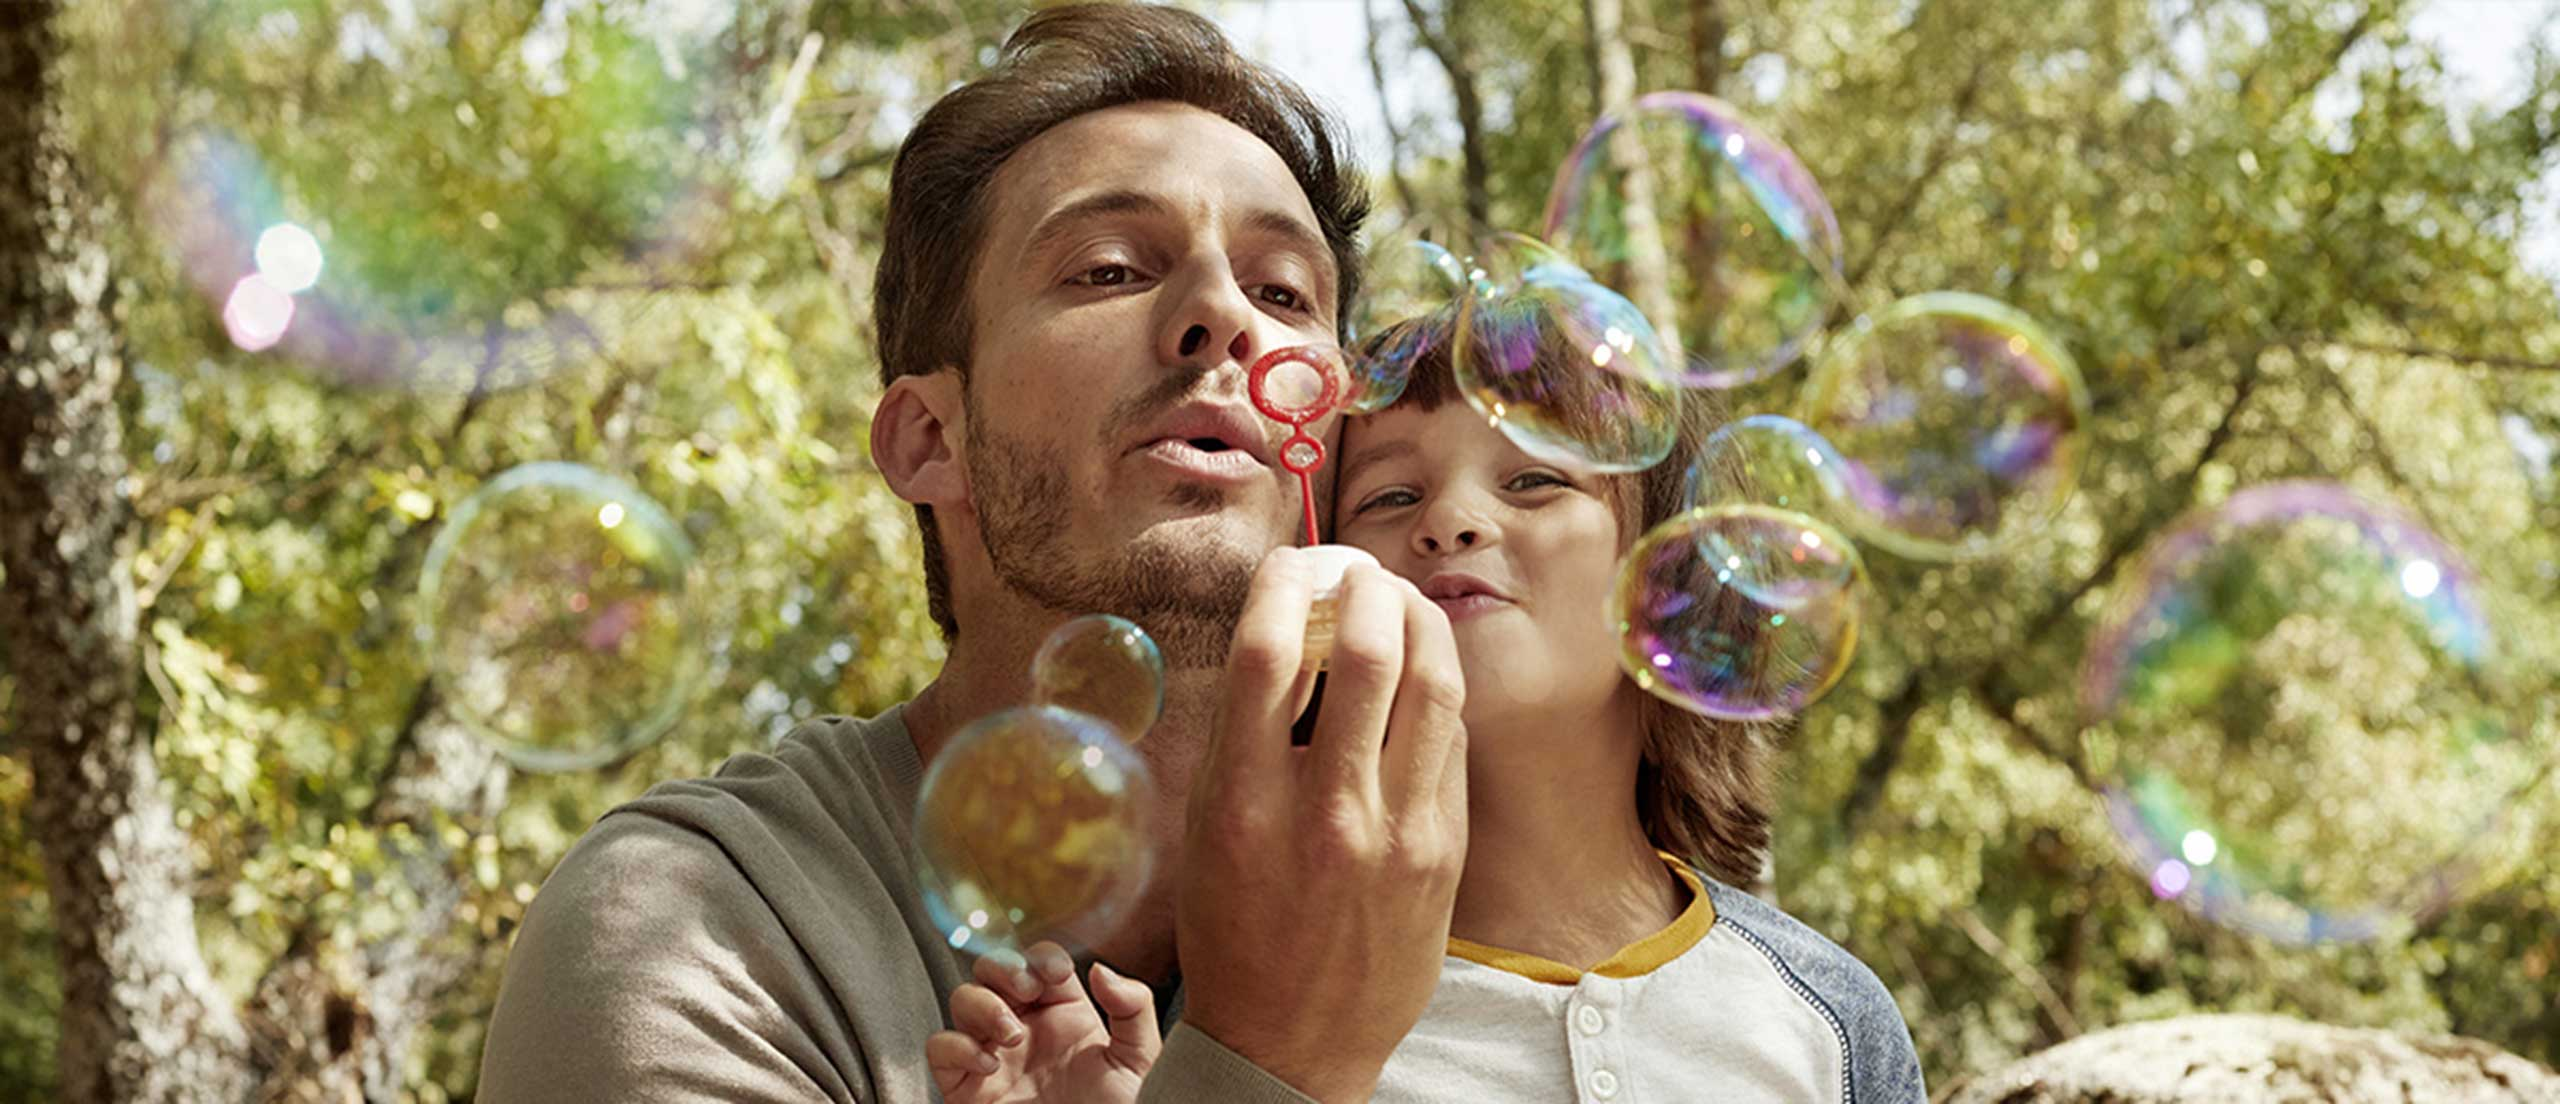 Father and Son blow bubbles together